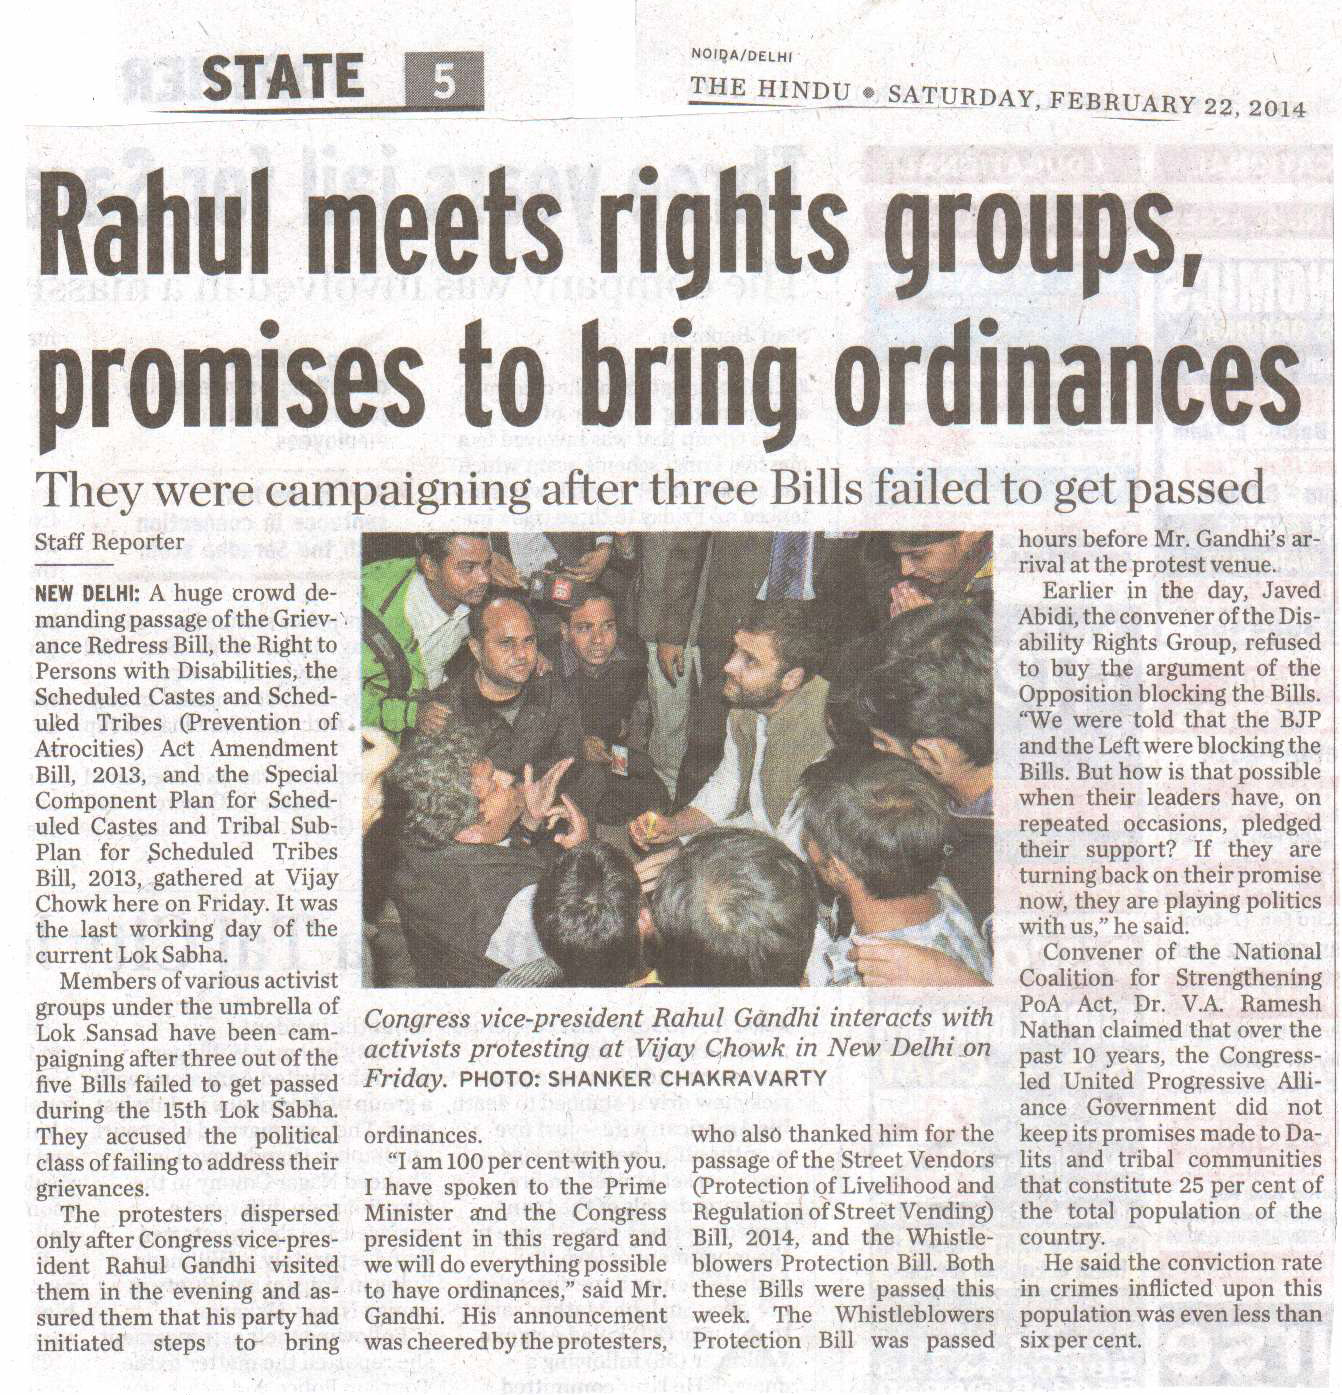 Rahul meets rights groups, promises to bring ordinances